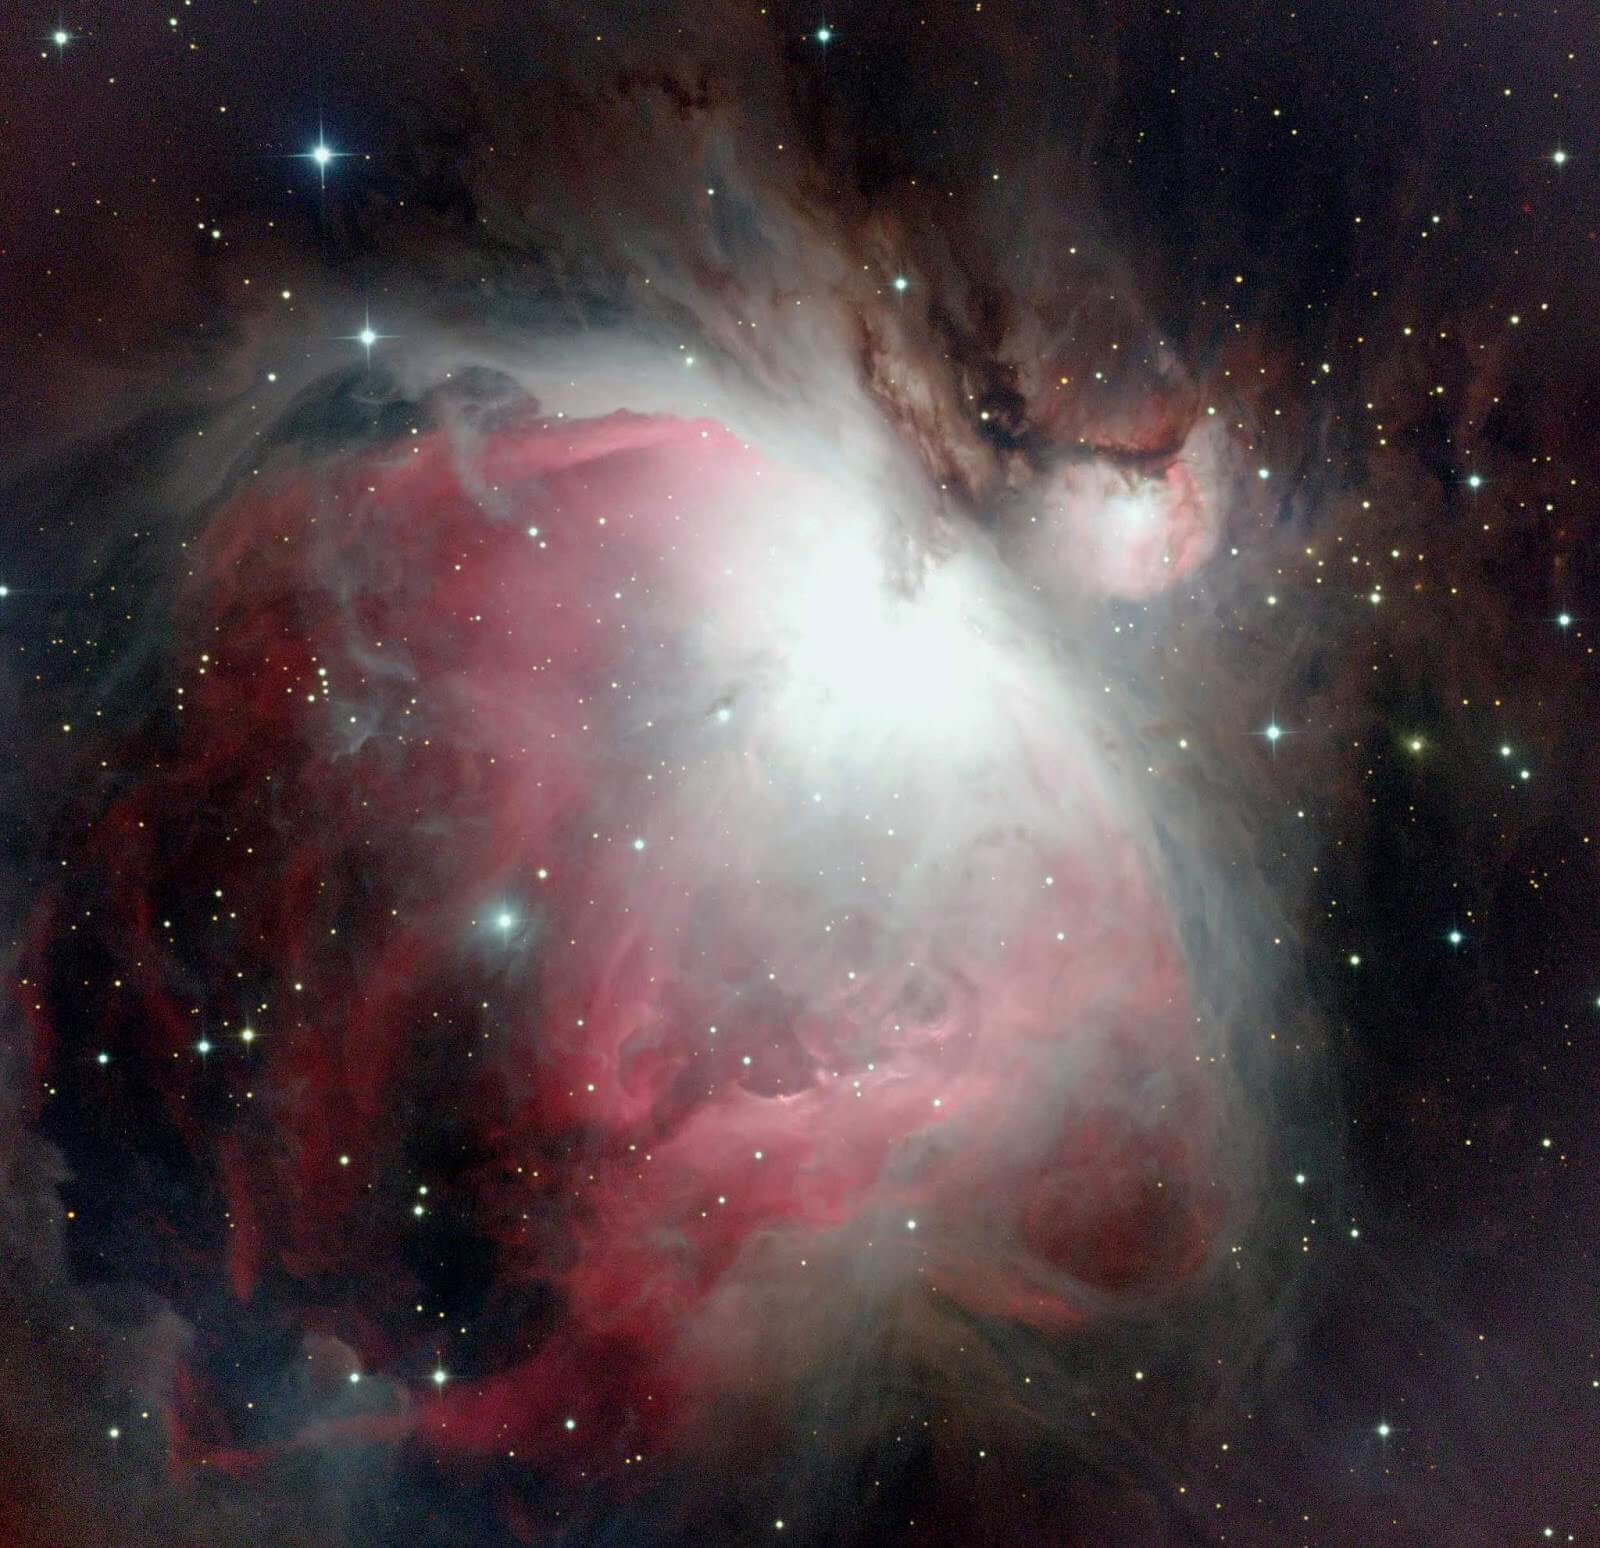 M42 The Great Orion Nebula Imaged with T31